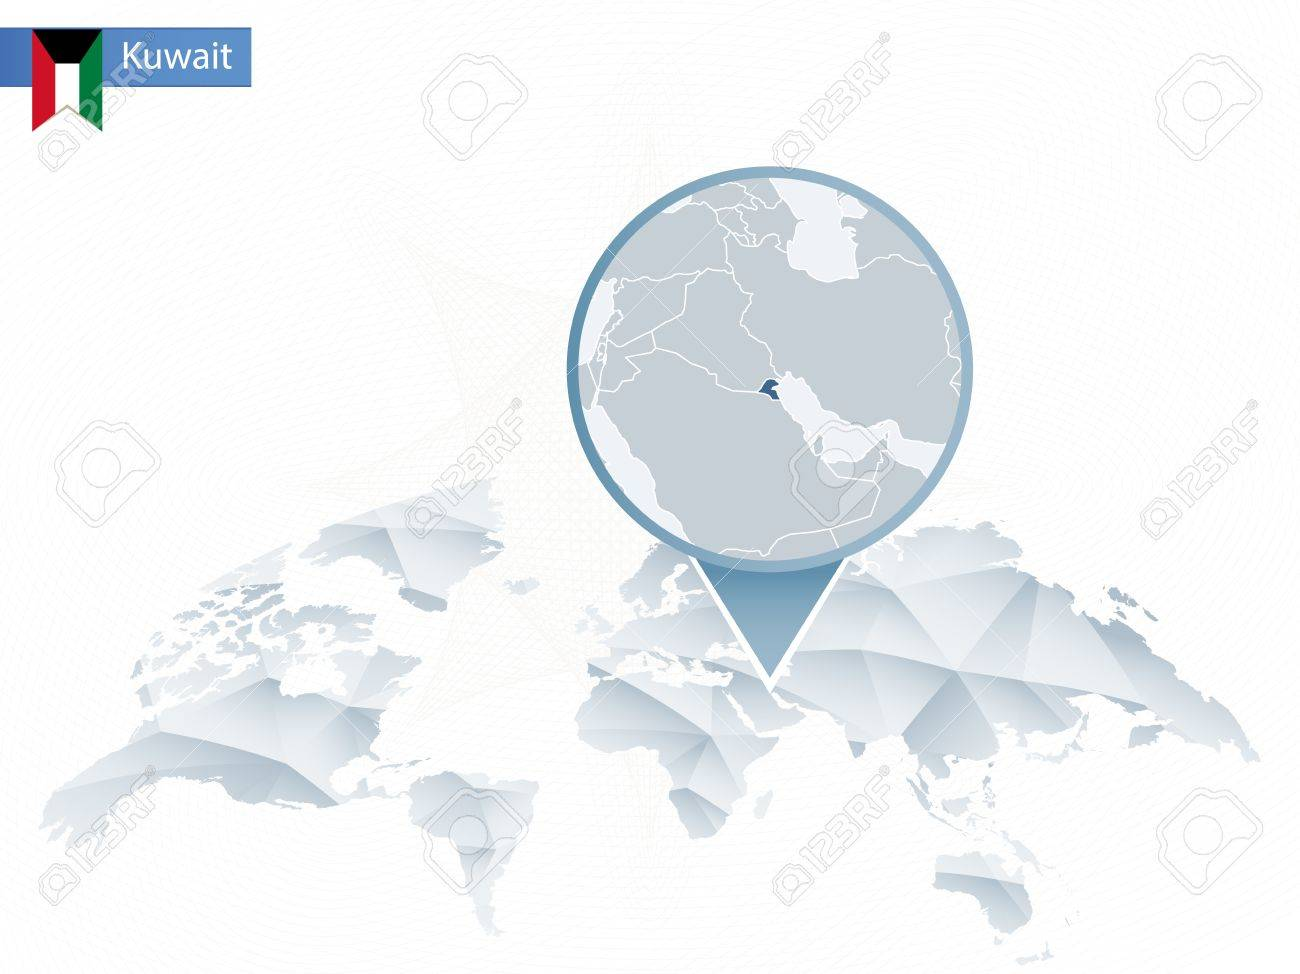 Abstract Rounded World Map With Pinned Detailed Kuwait Map Vector